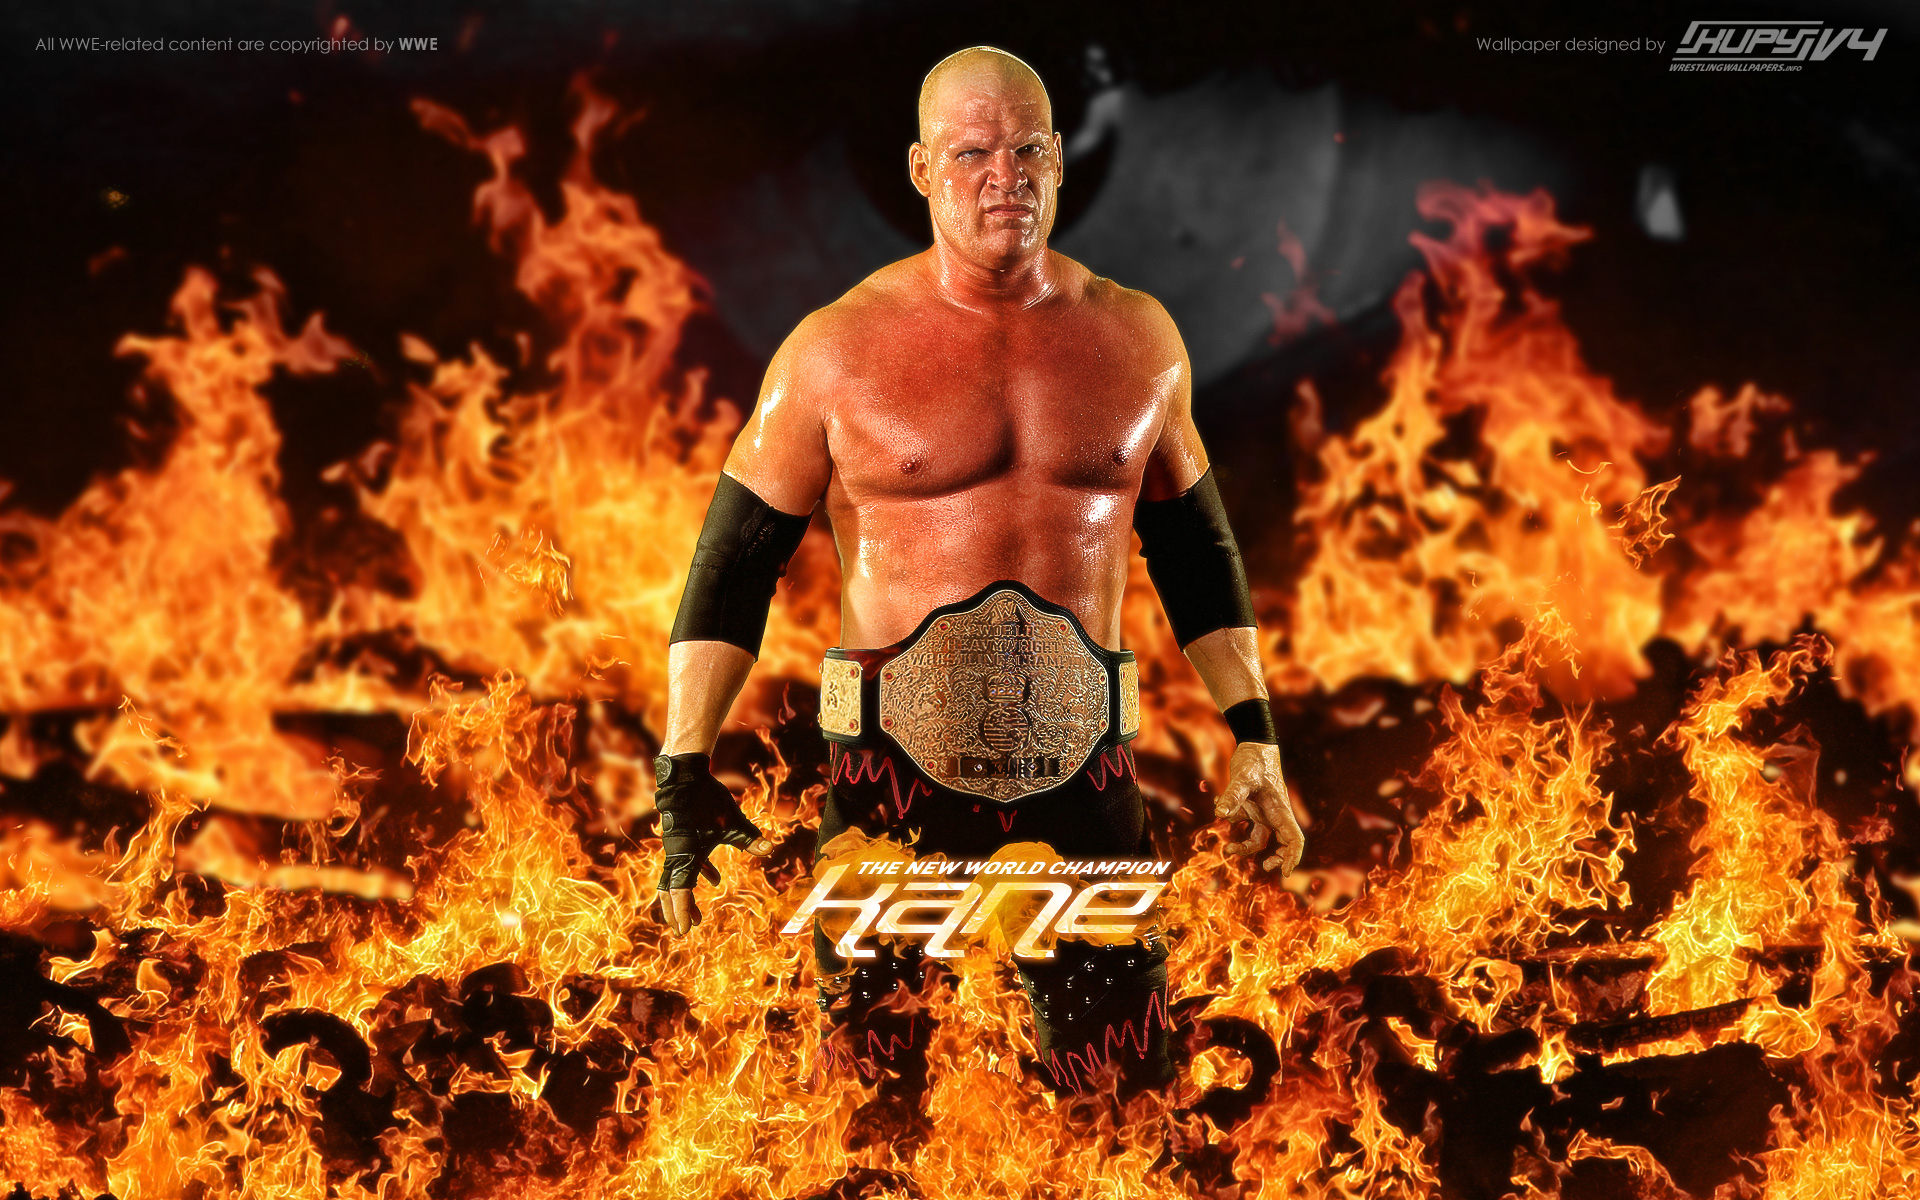 kane-world-champion-wallpaper-1920x1200